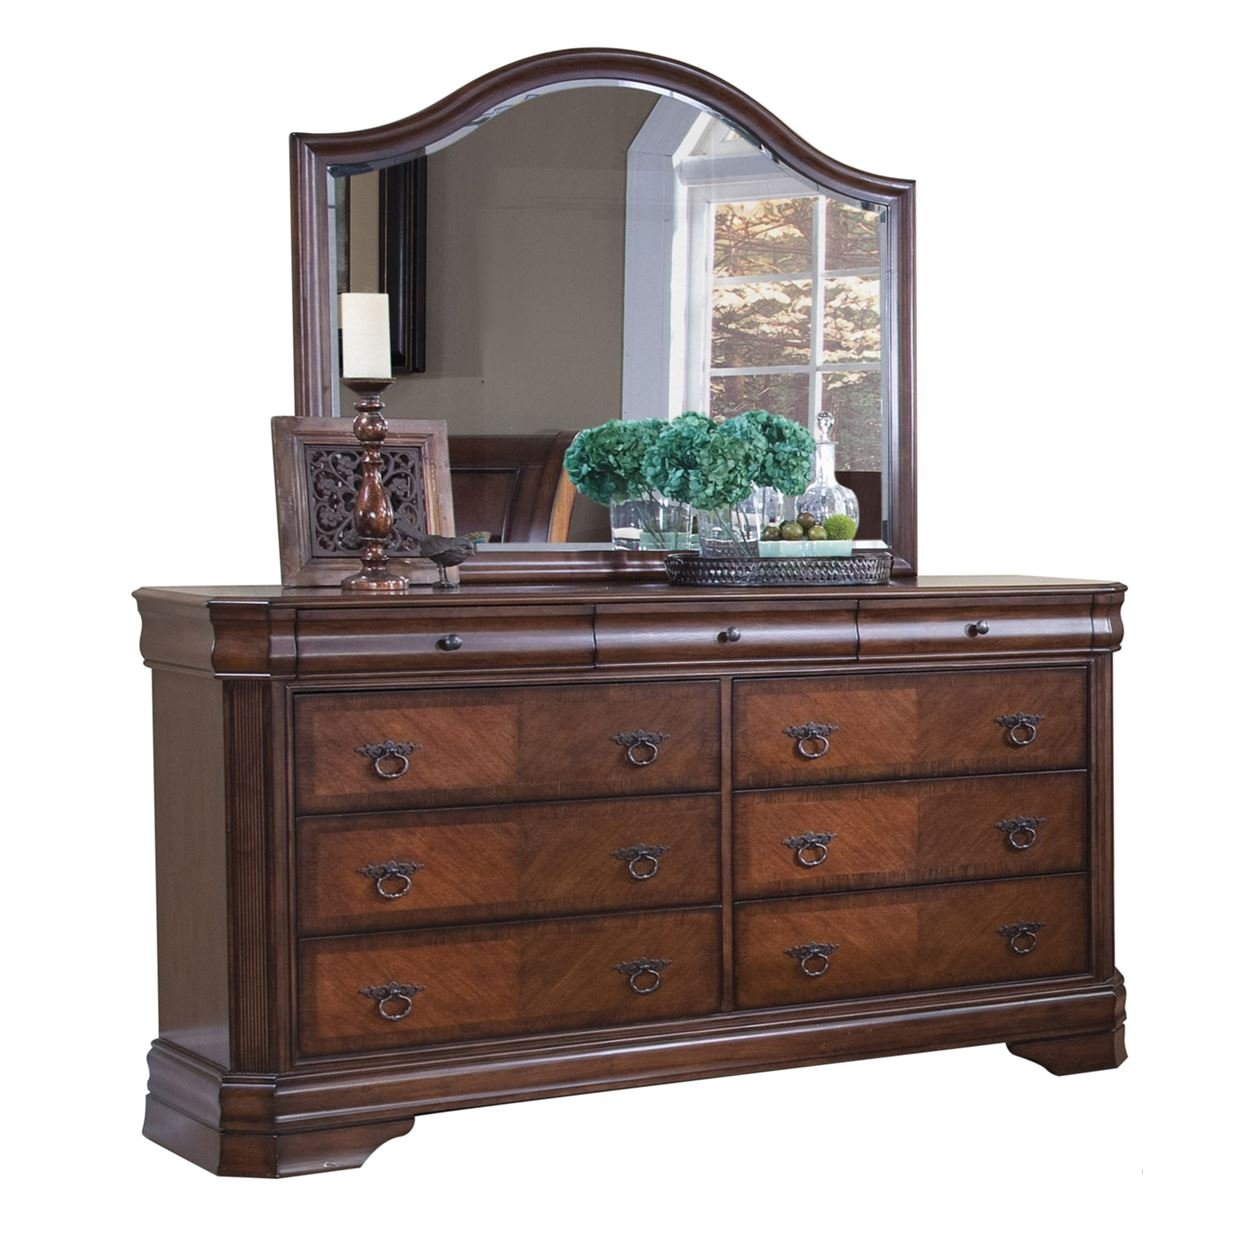 Luxury dressers with mirror by NCF